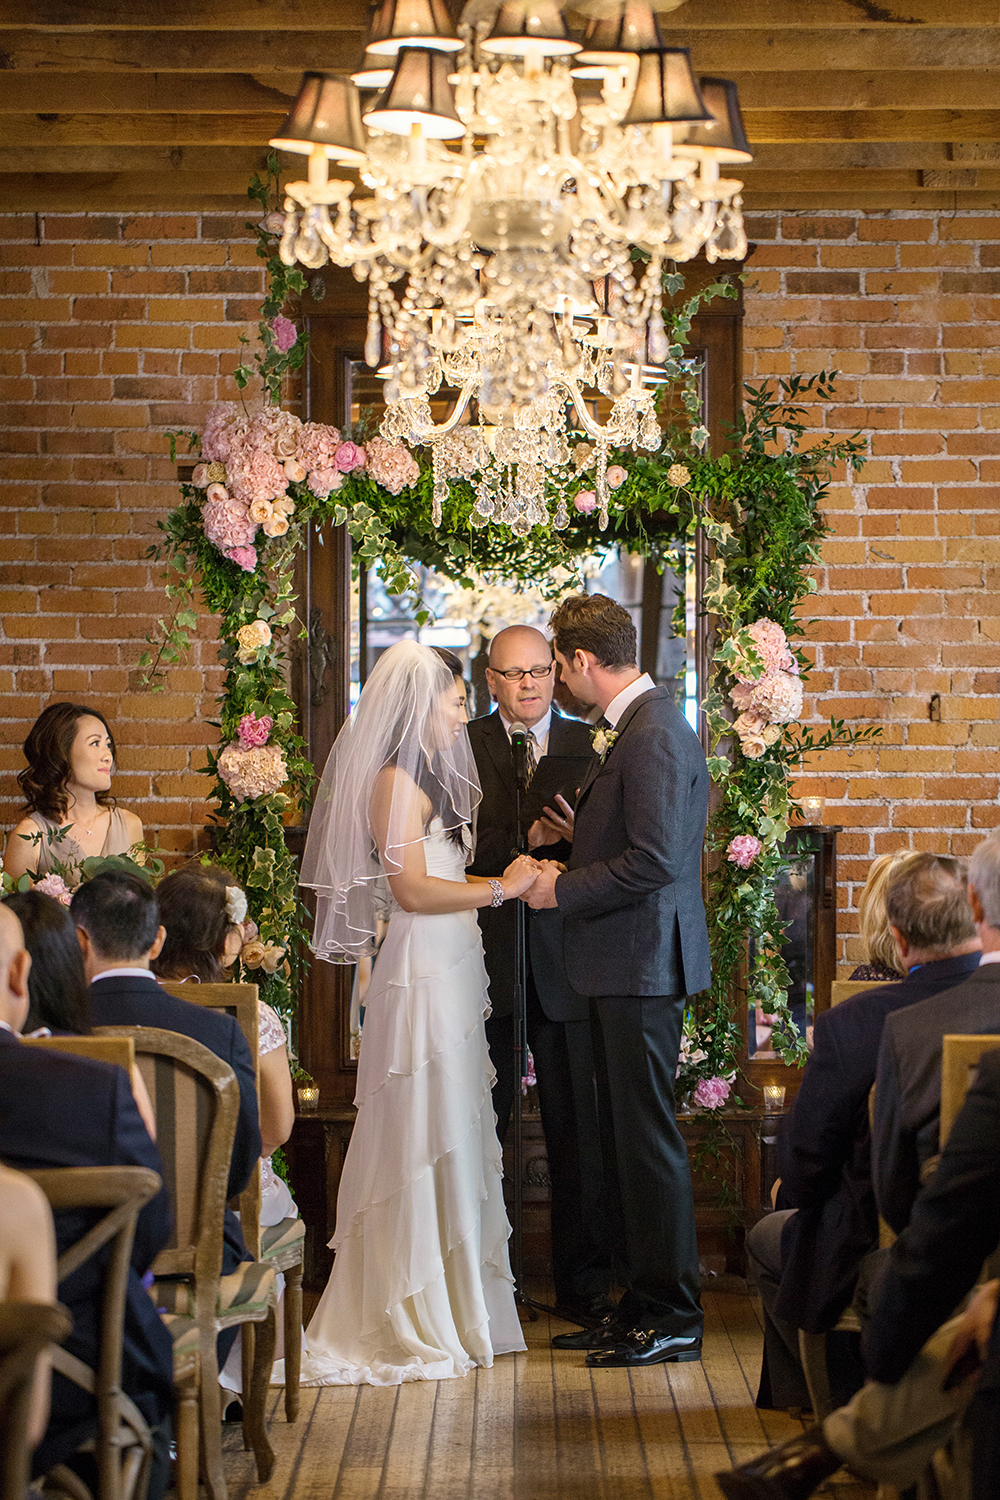 wedding ceremony - photo by Priscila Valentina Photography http://ruffledblog.com/blush-pink-wedding-at-carondelet-house